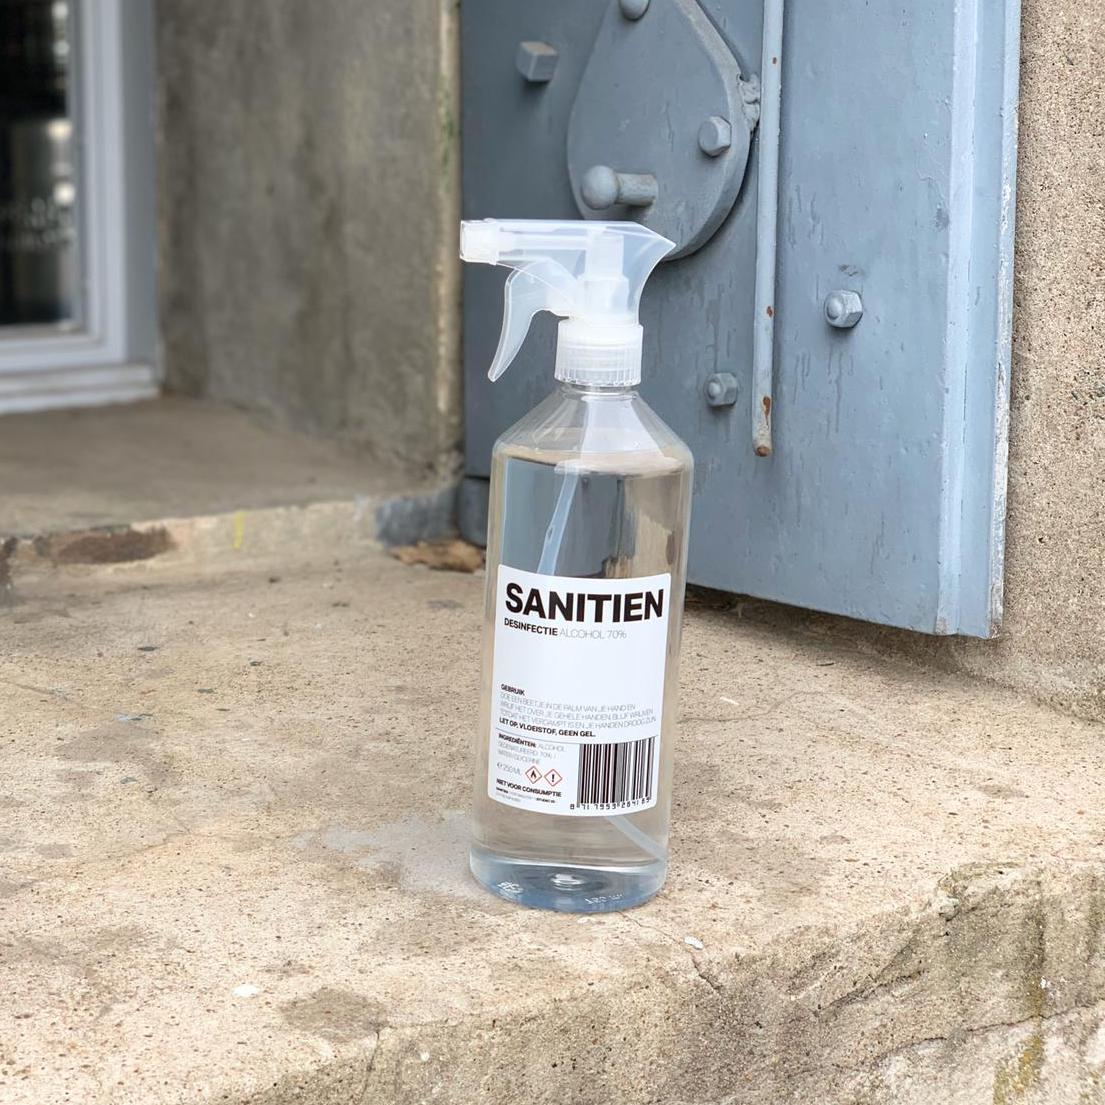 Sanitien 750 ml hand sanitiser